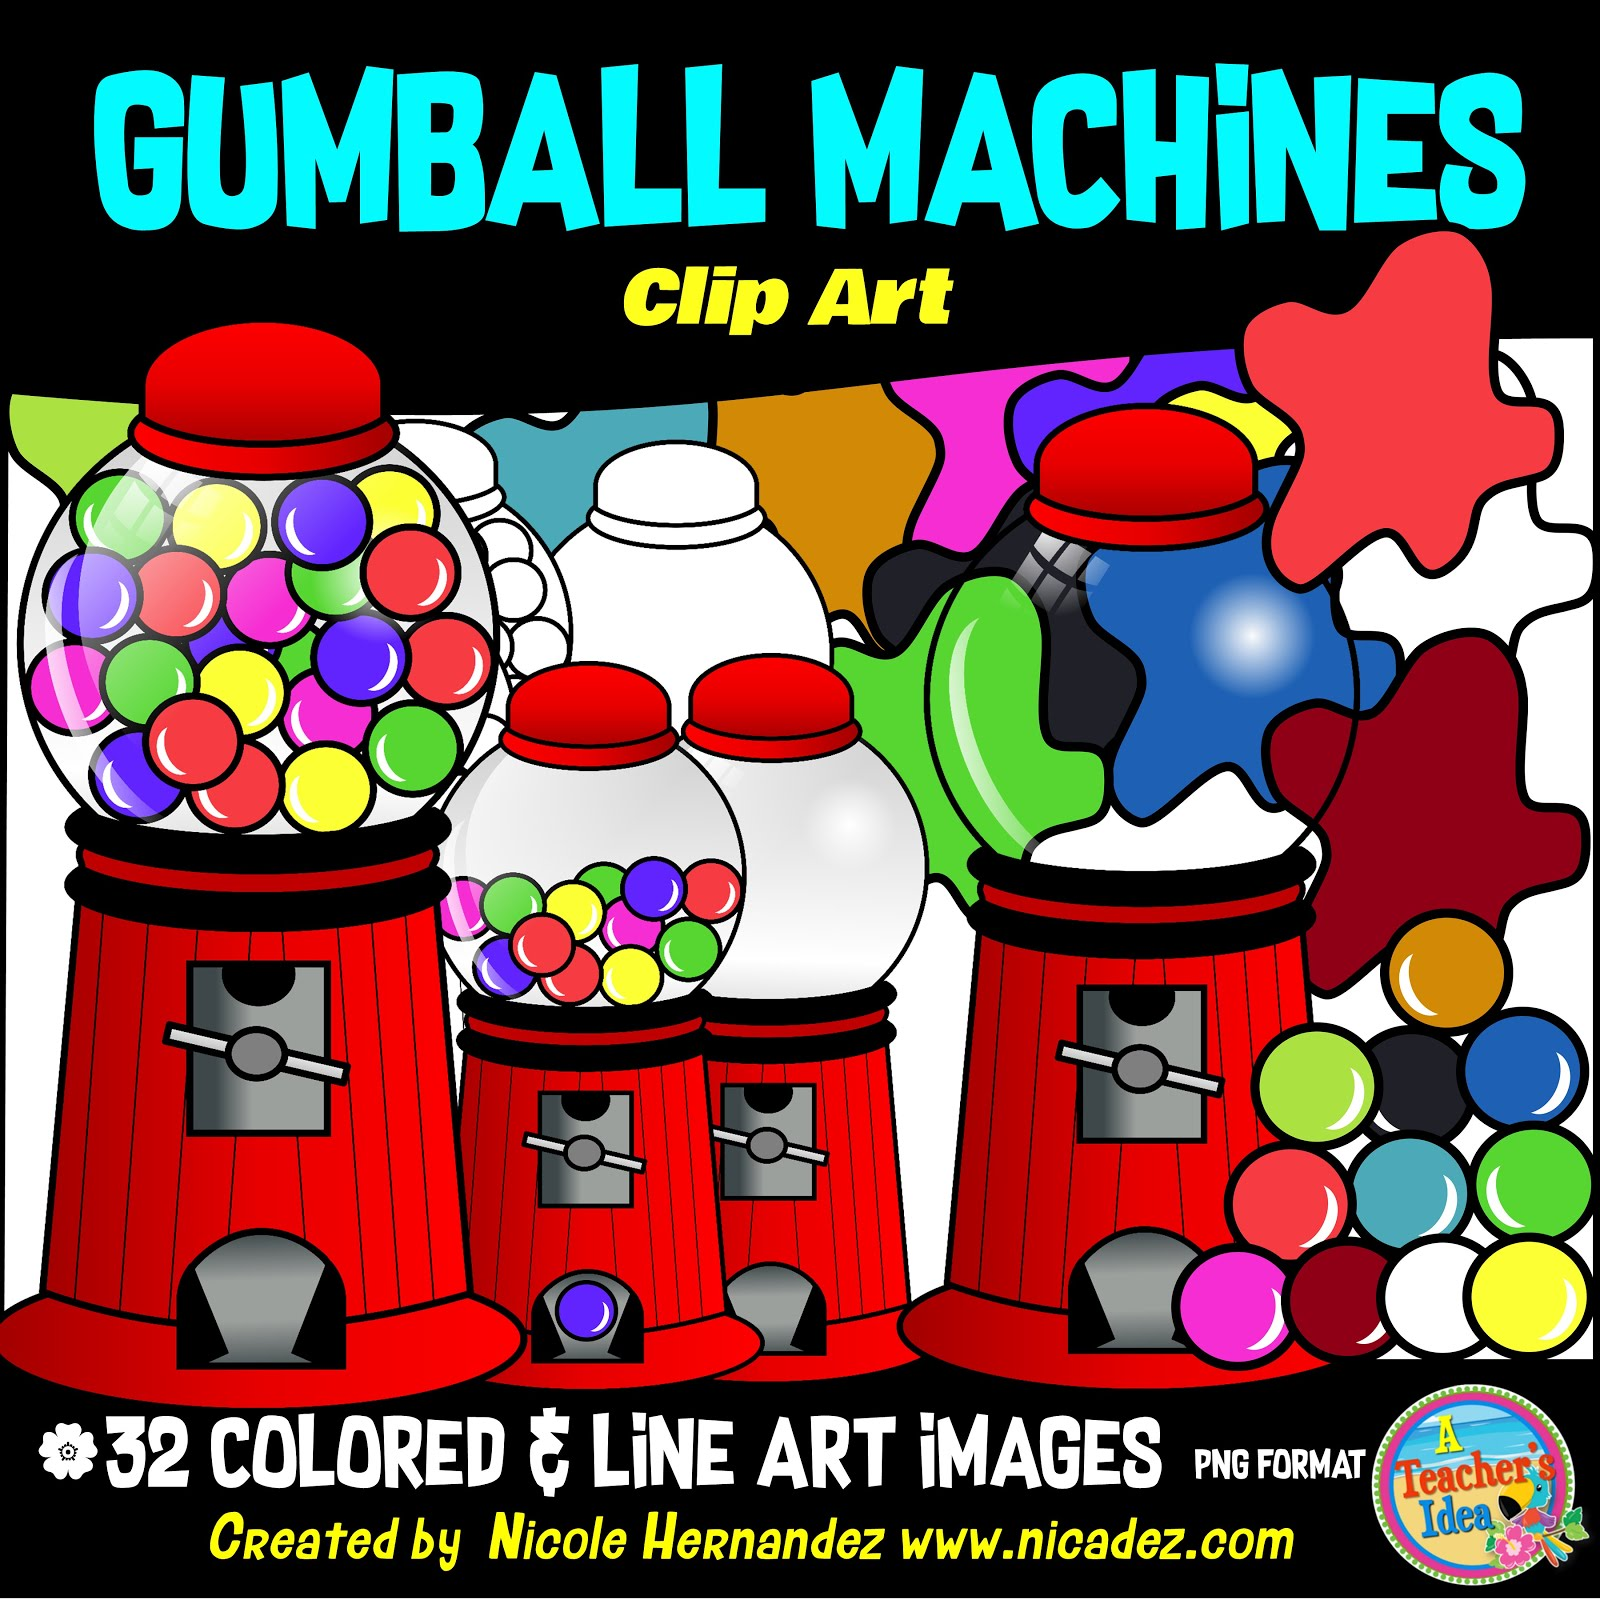 Great Clip Art sets now available!